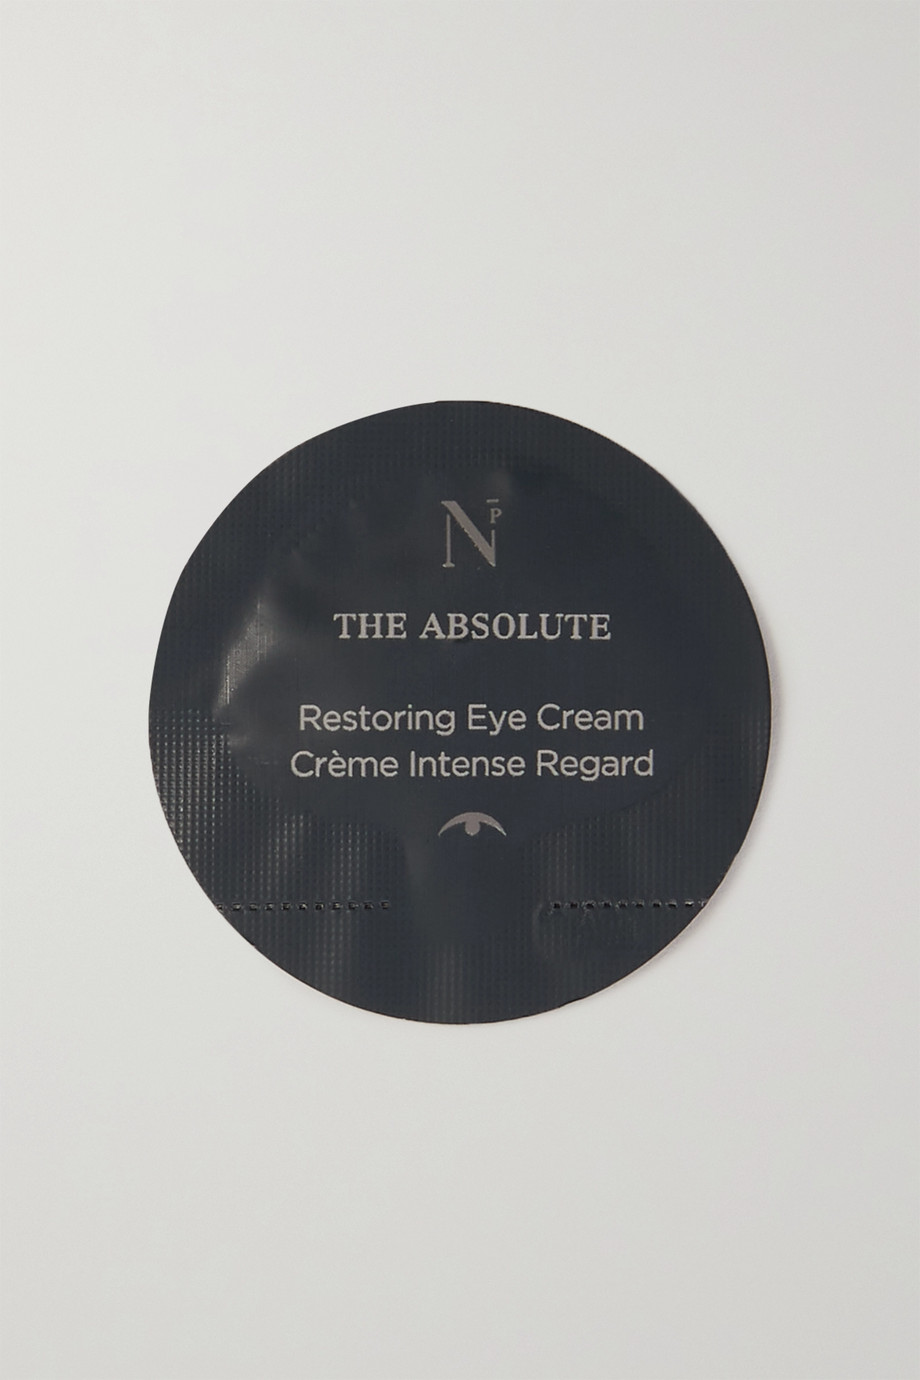 NOBLE PANACEA The Absolute Restoring Eye Cream Refill, 30 x 0.3 ml